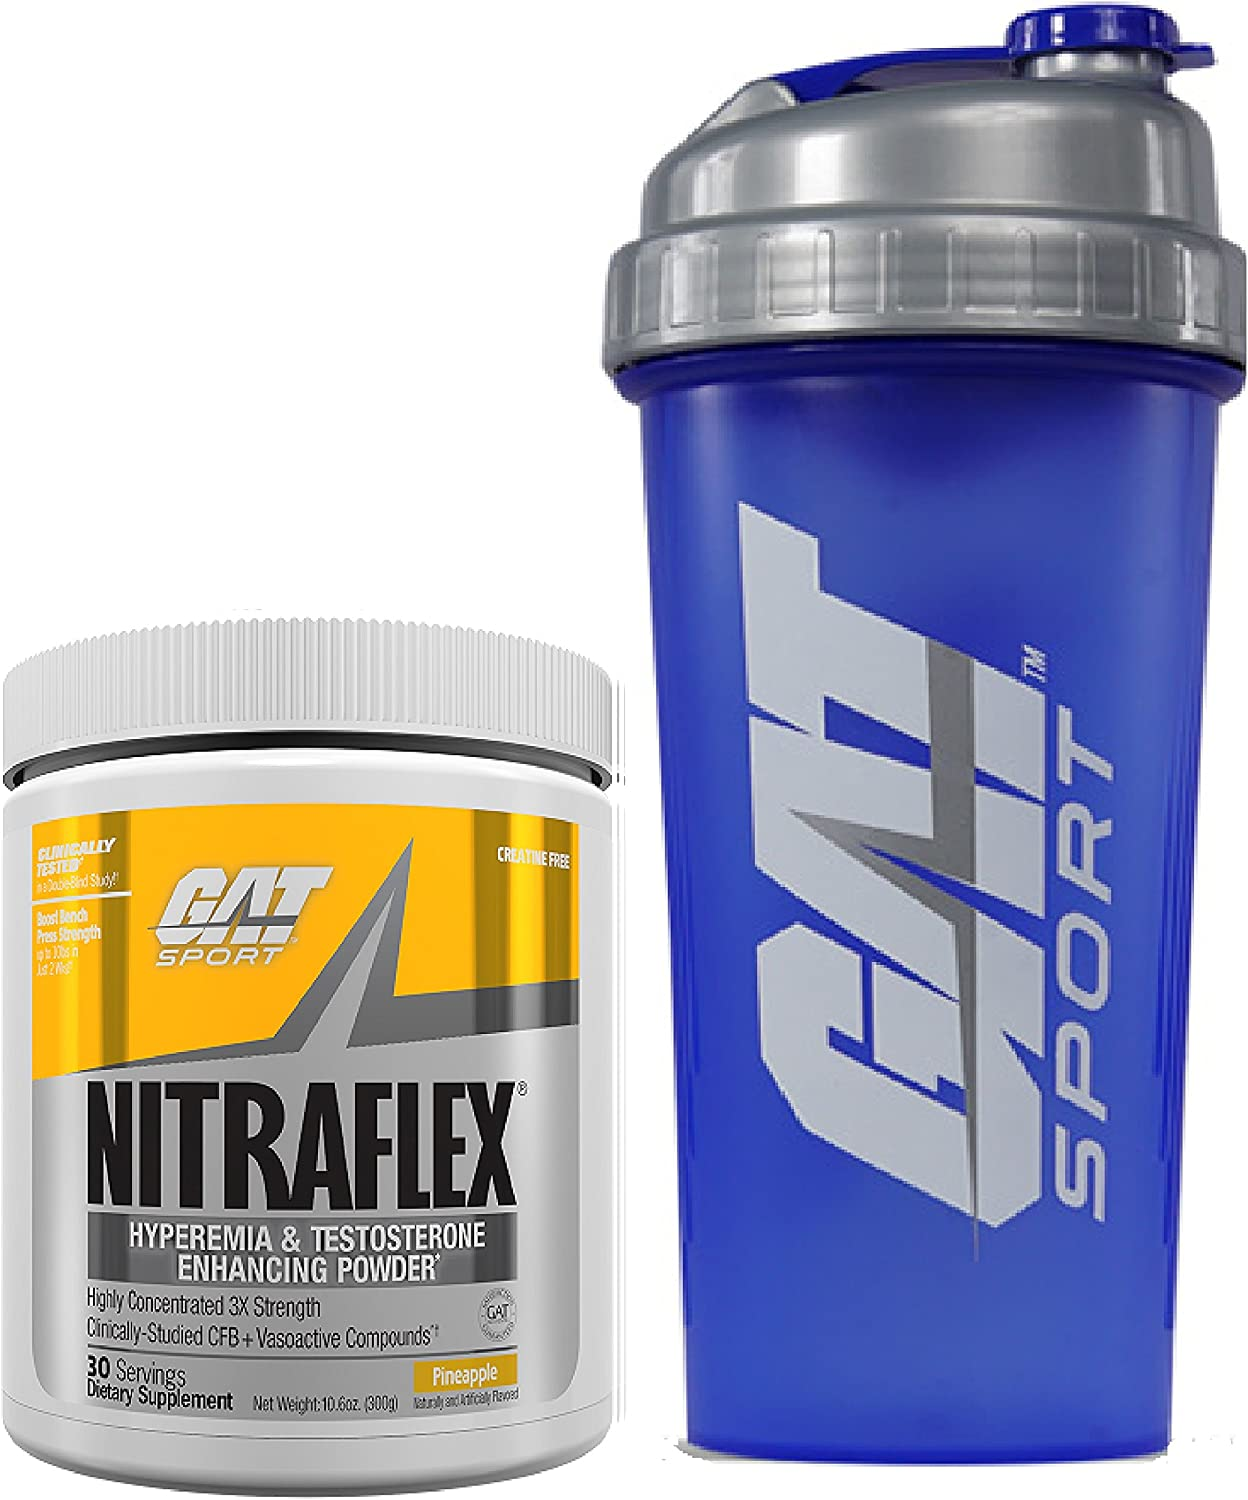 GAT Clinically Tested Nitraflex, Testosterone Enhancing Pre Workout 300 g 30 servings with BONUS GAT Shaker Bottle Pineapple